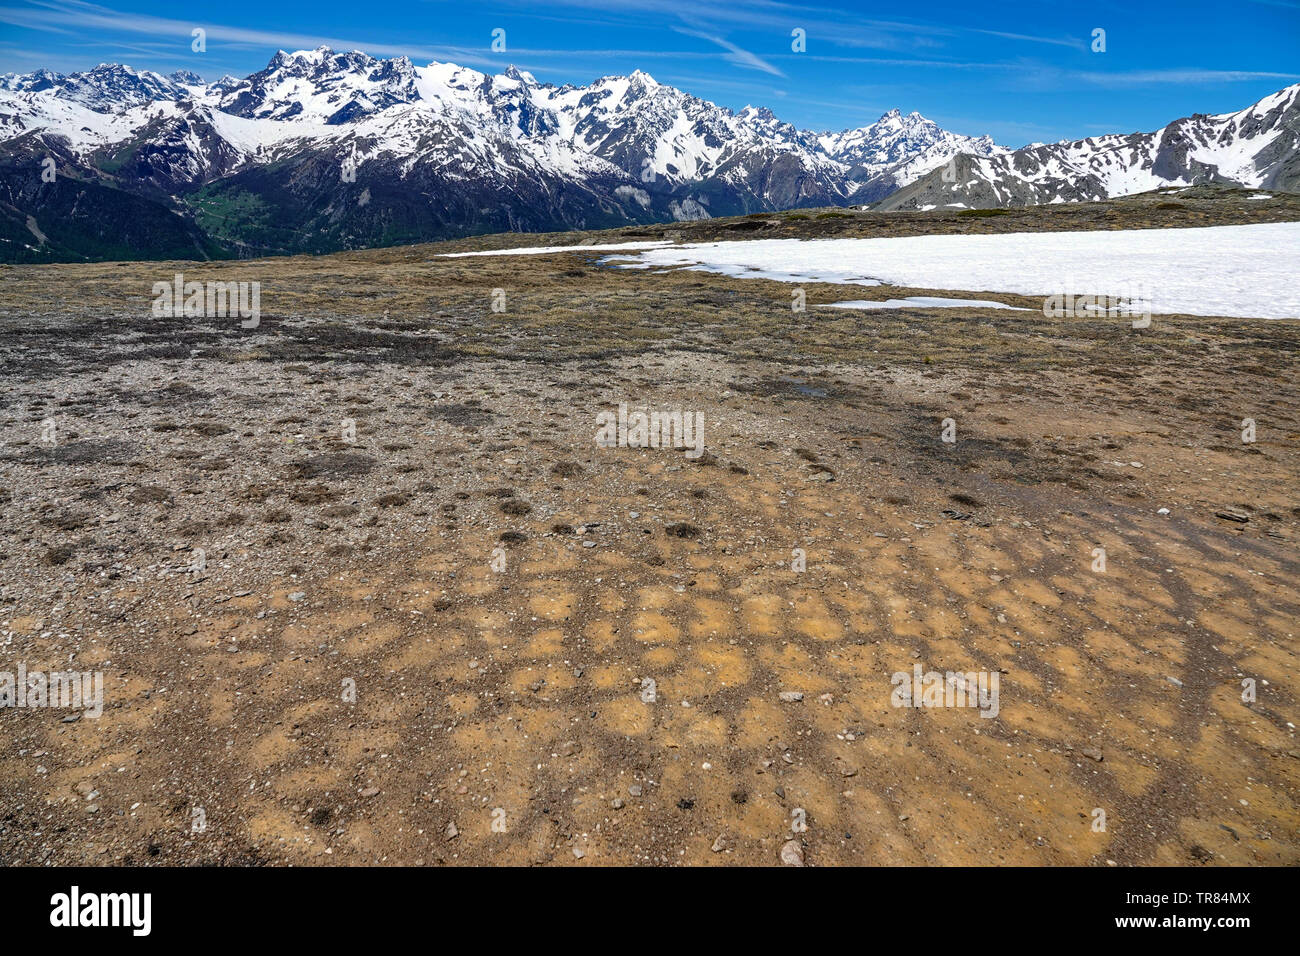 Frost polygons on flat gravel area, Col du Granon, Briancon, Ecrins, France - Stock Image